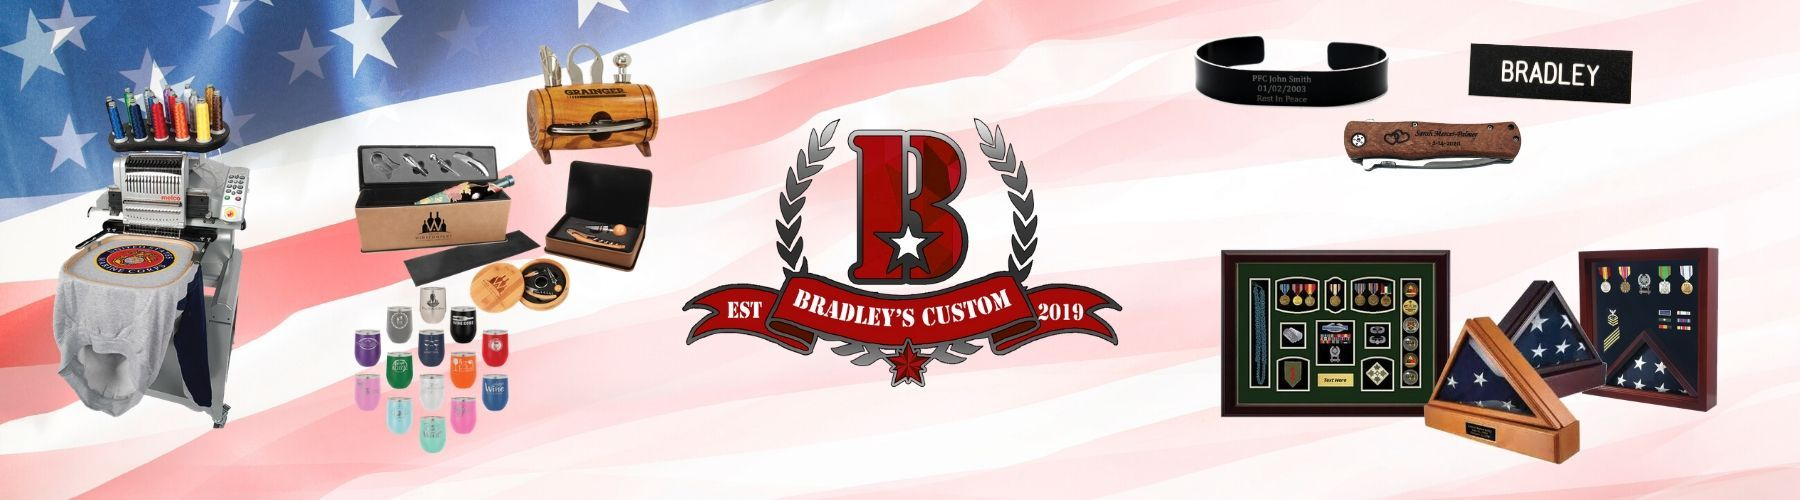 Bradley's Custom Located in Evans Mills, NY